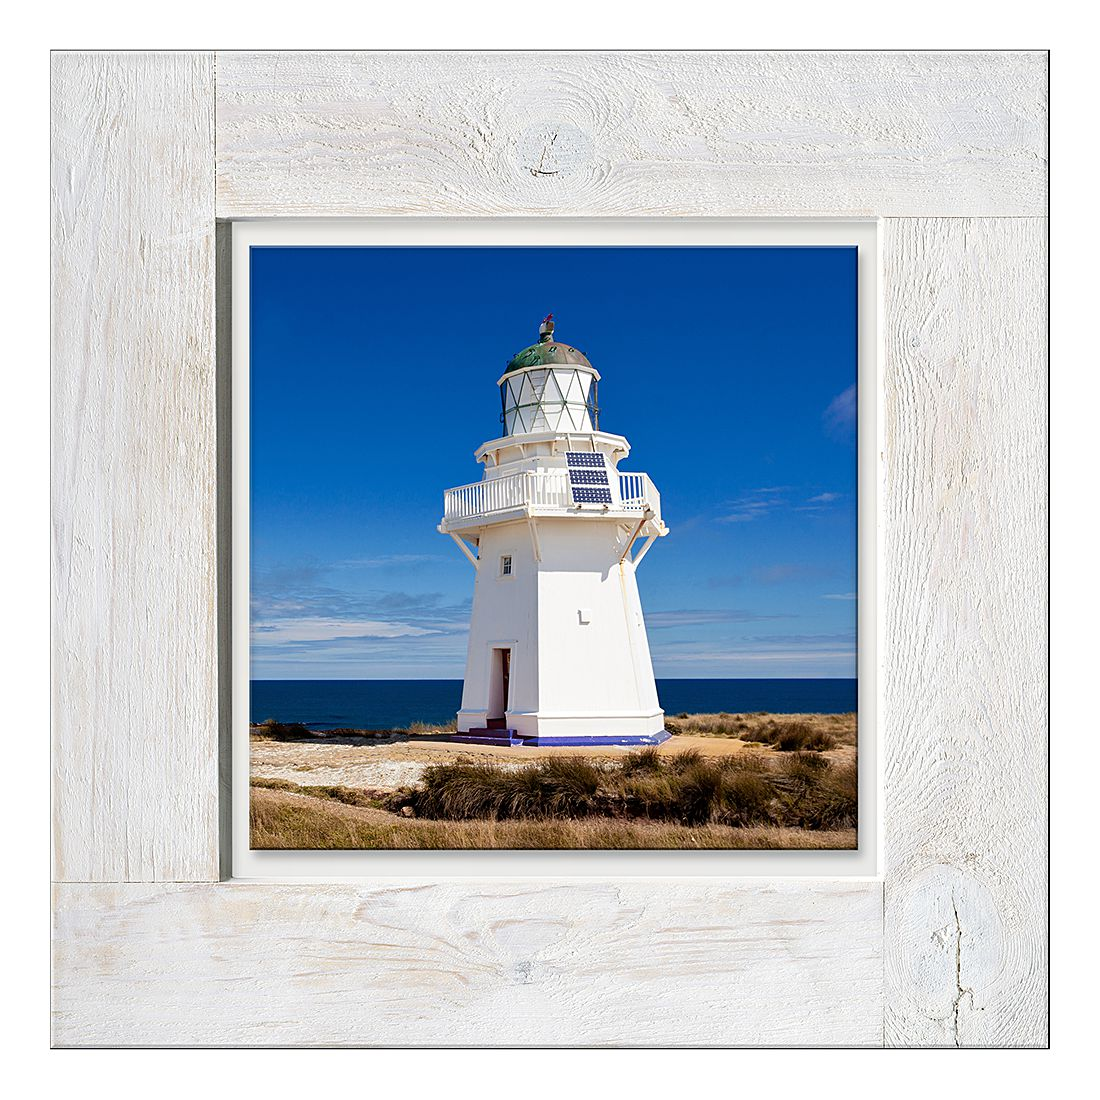 Home 24 - Sous-verre lighthouse iii, pro art